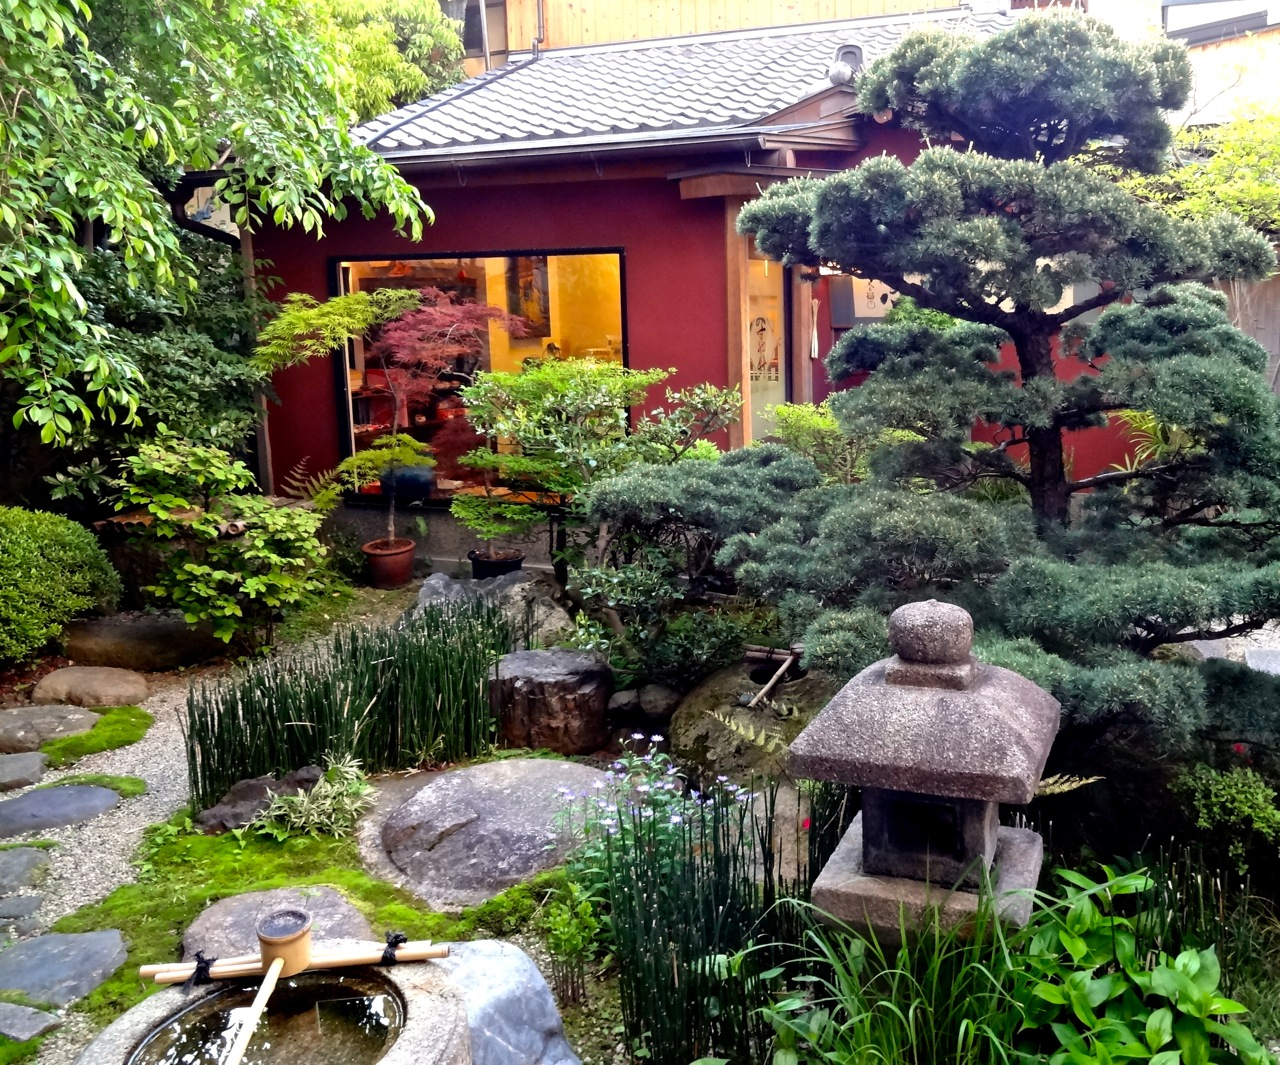 meandering paths stone lantern water basin koi pond rocks flowers and